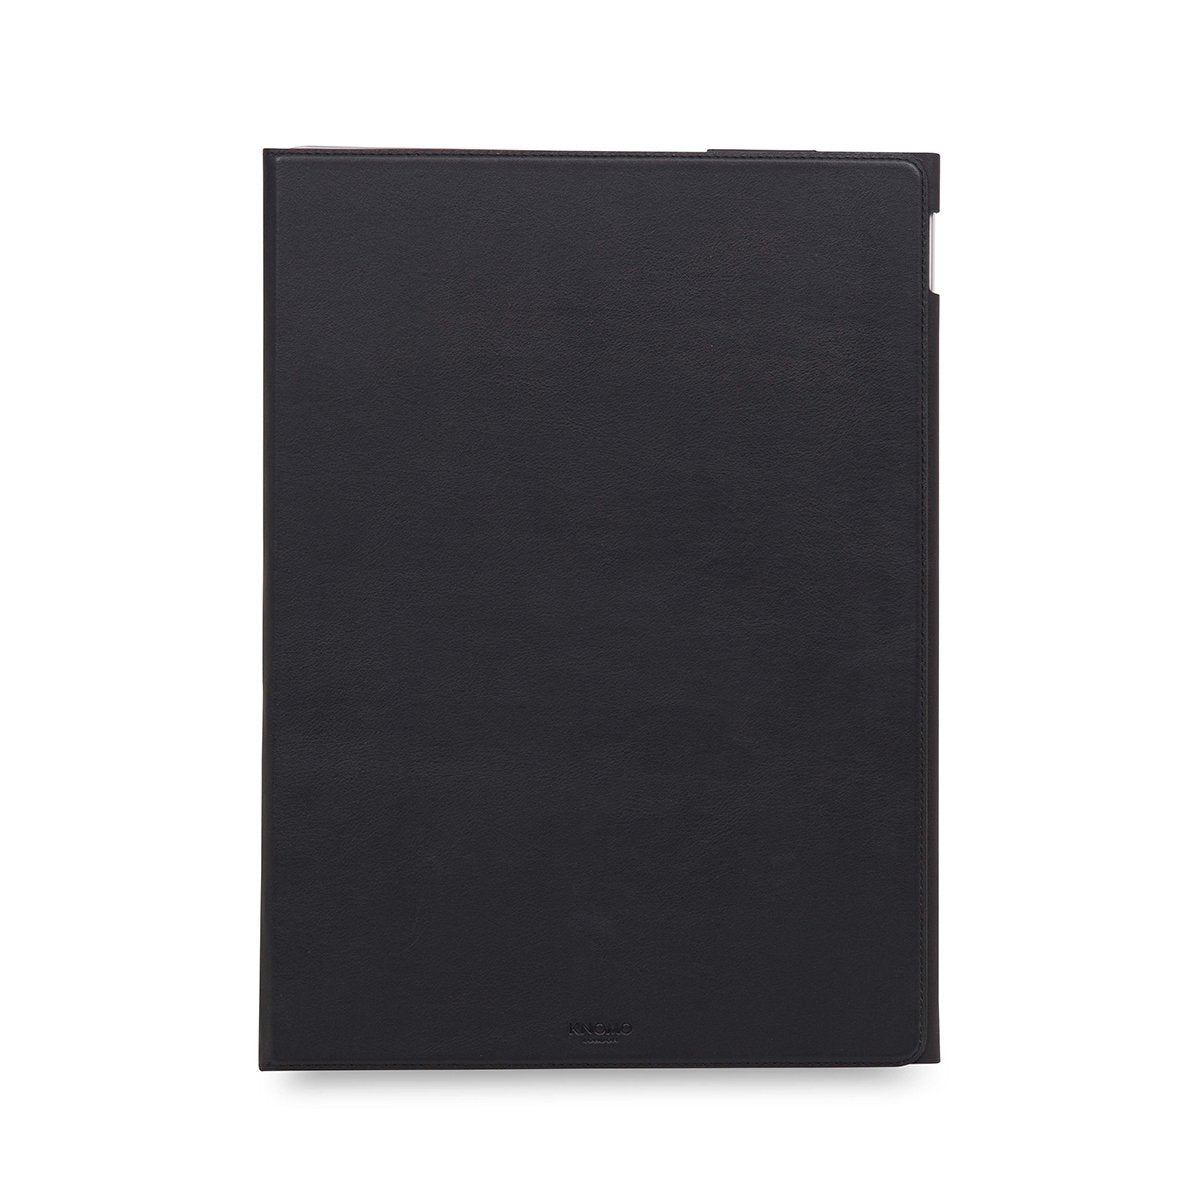 "iPad Pro 12.9"" Wrap Folio Case - Black 